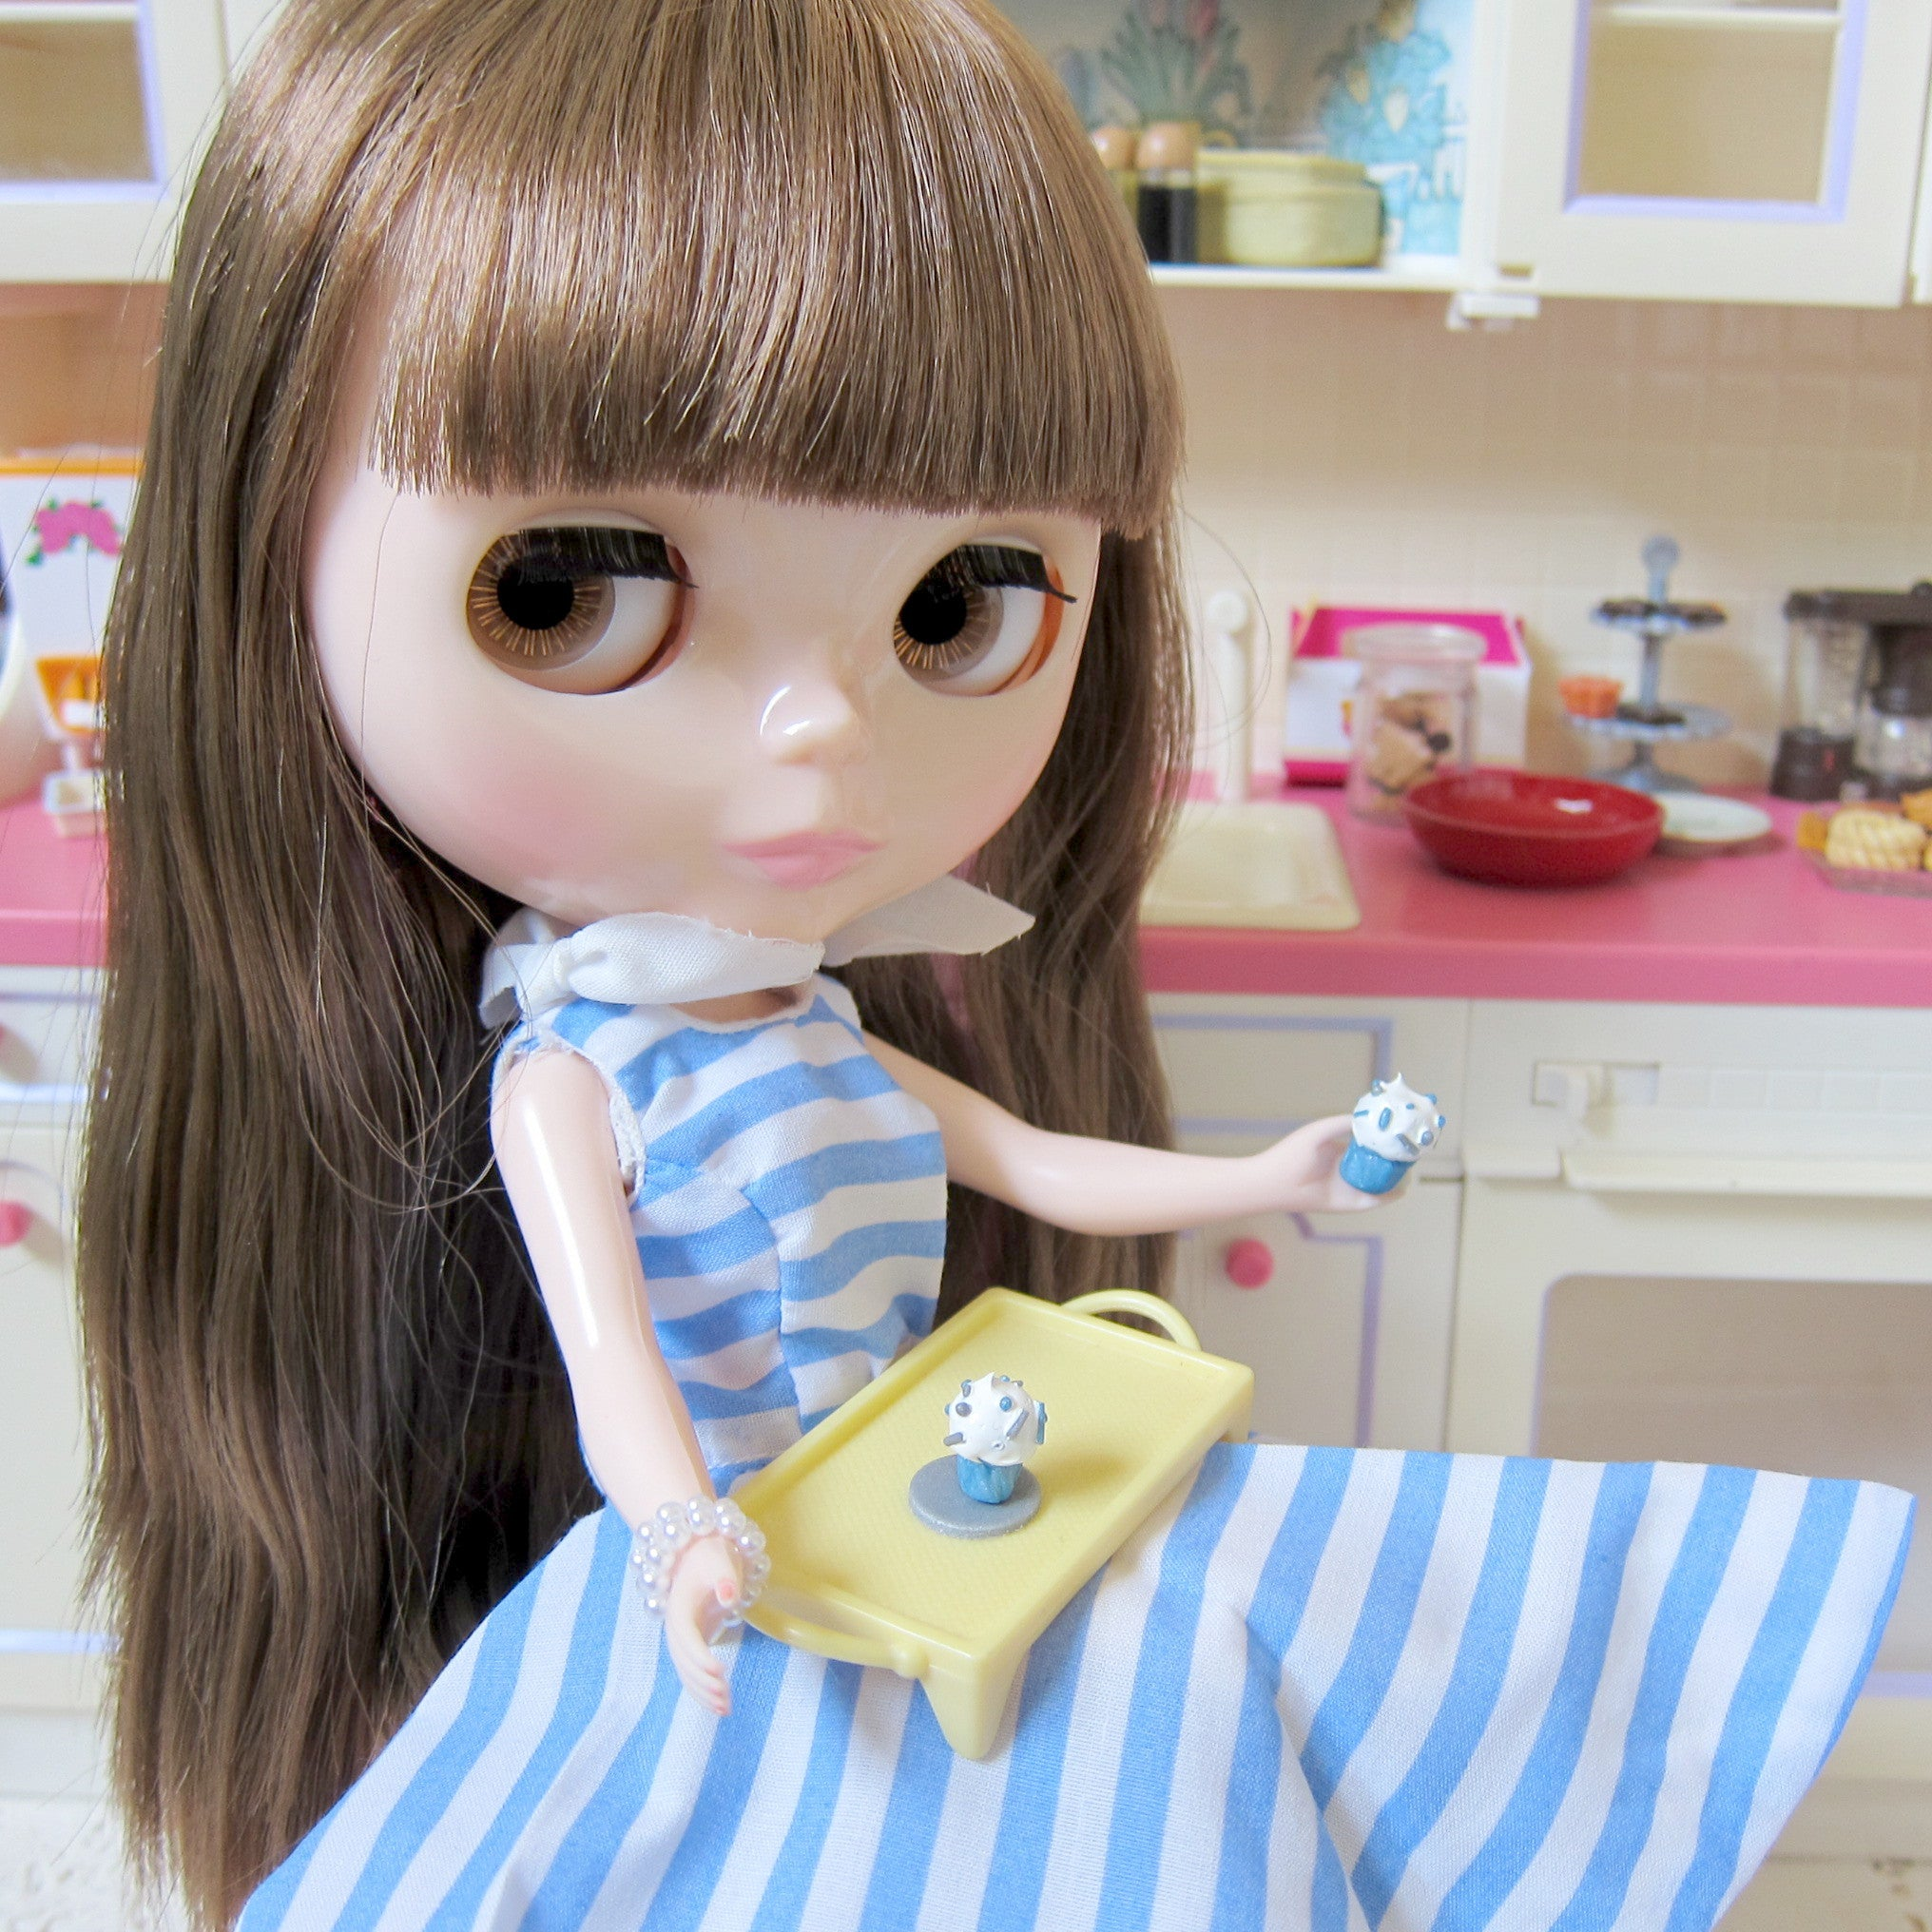 Miniature Cupcakes for Blythe, Pullip & Playscale Dolls